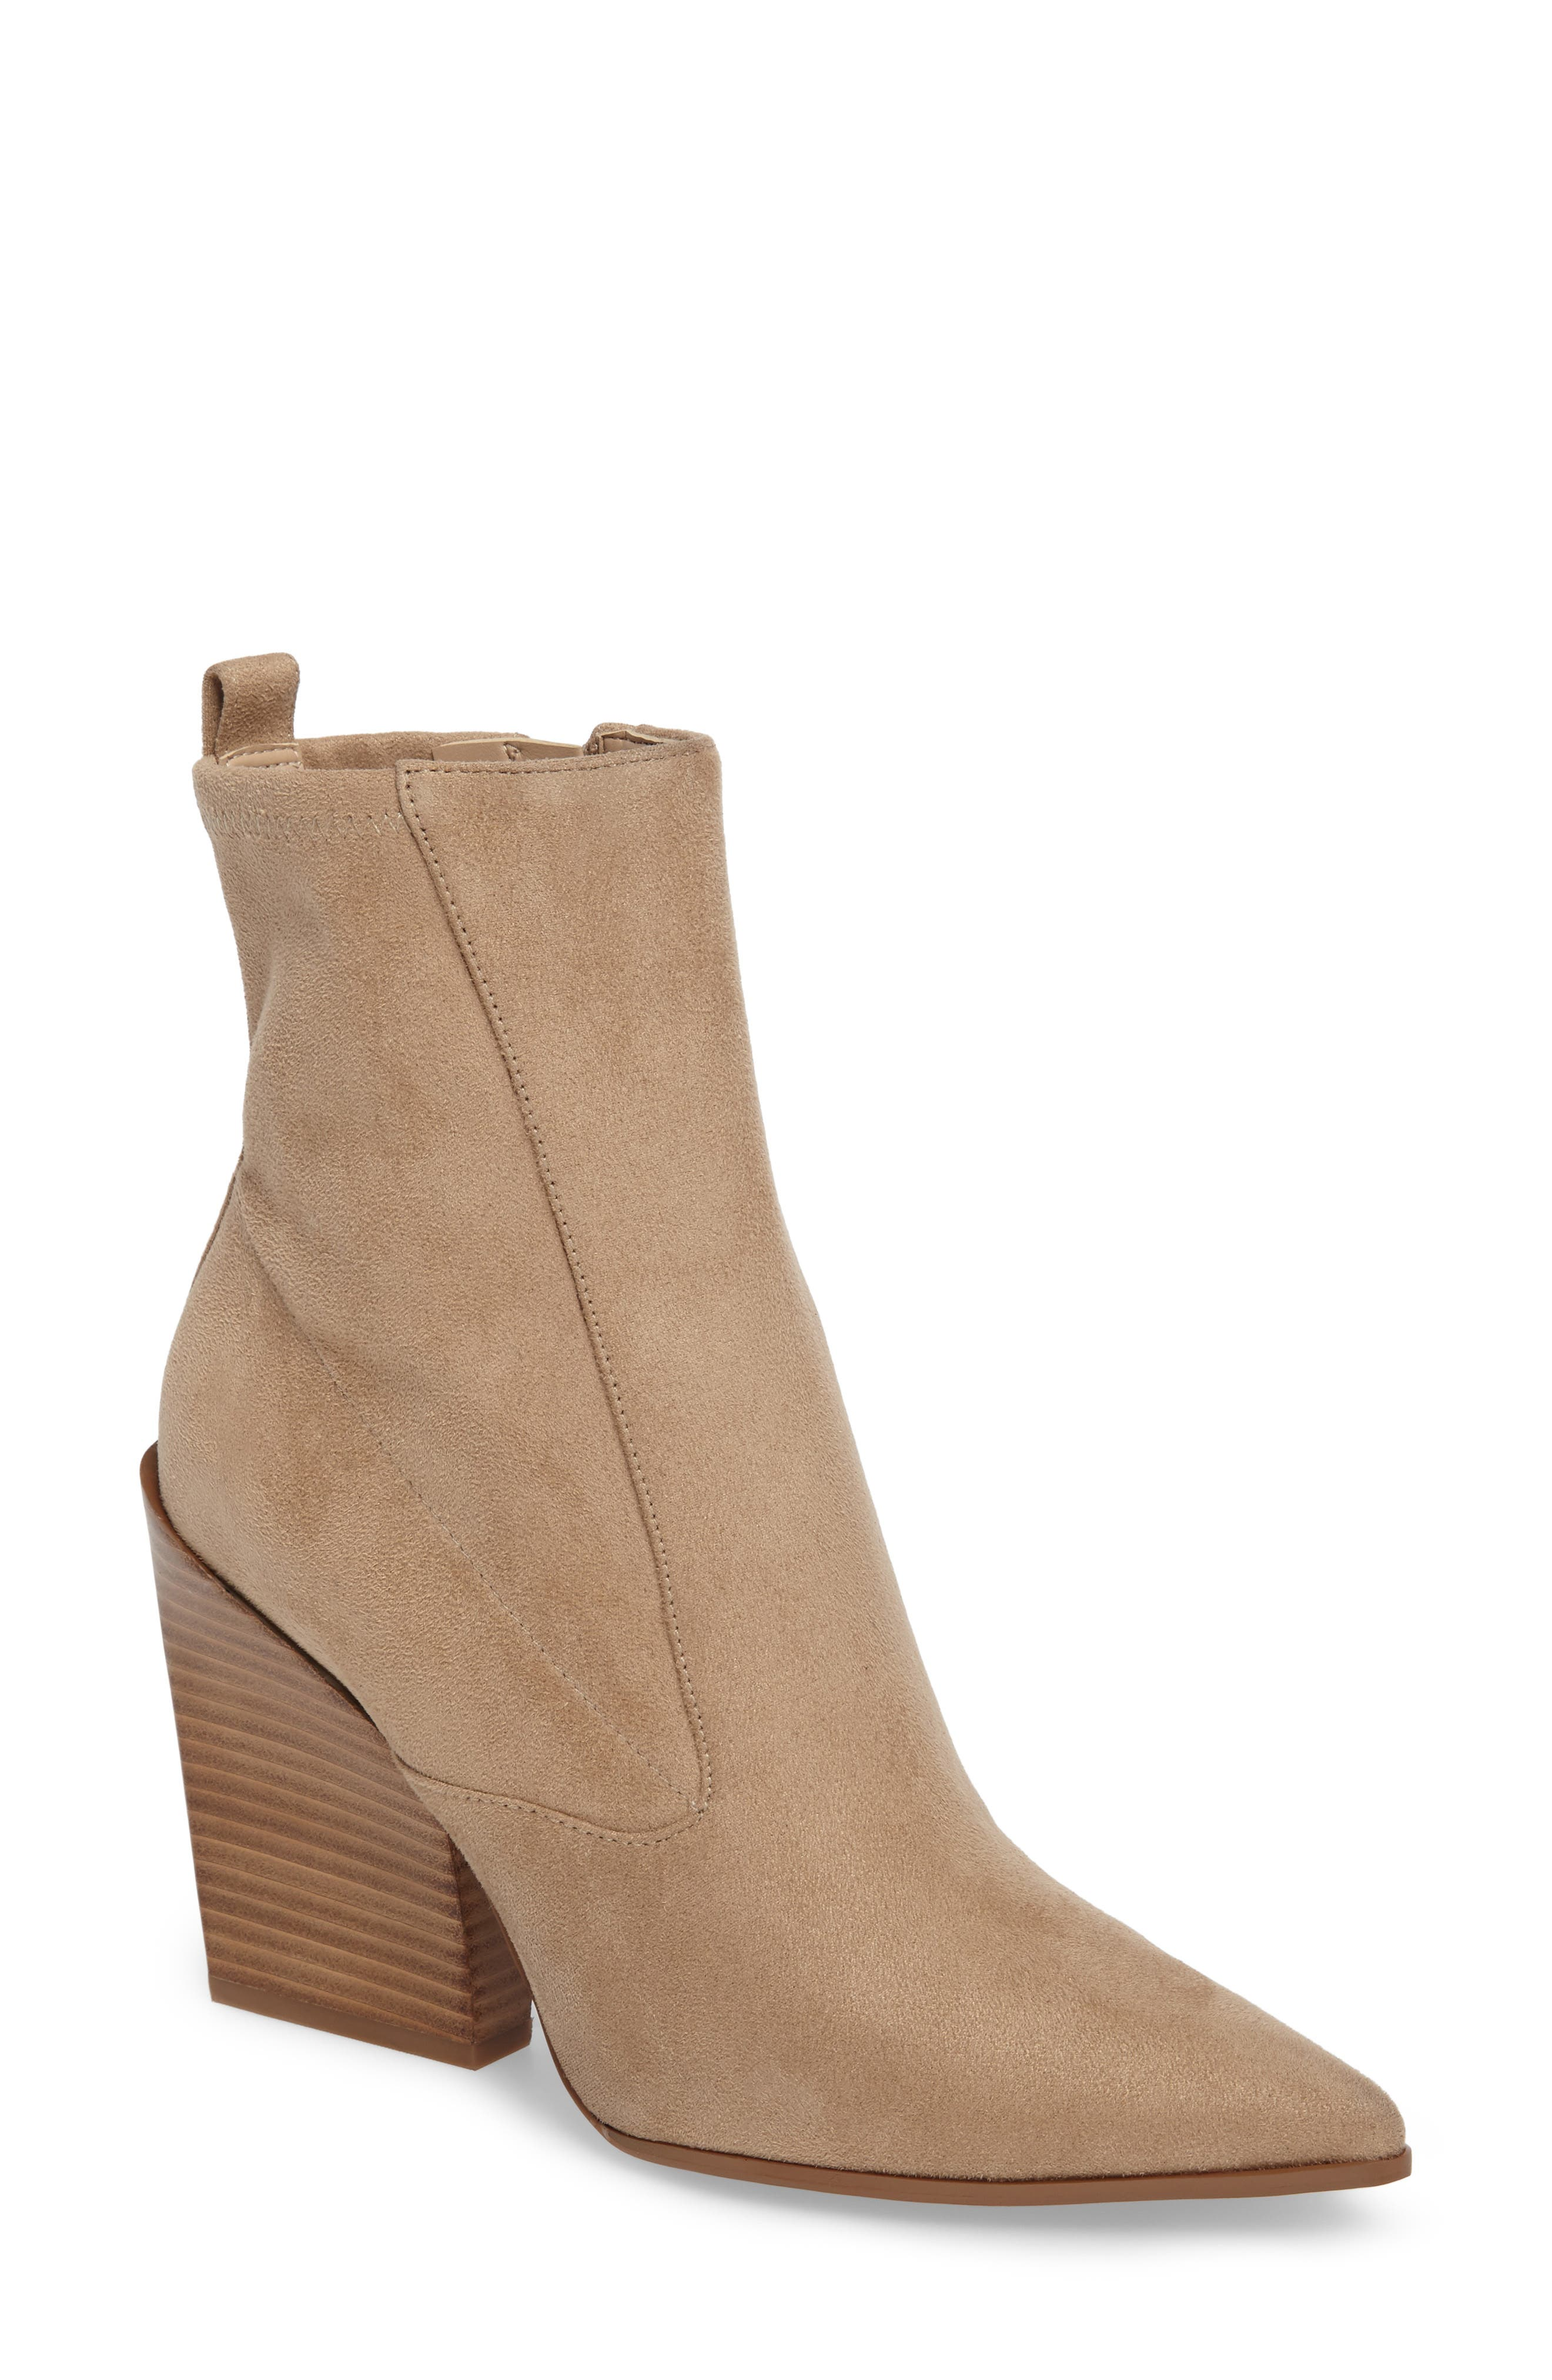 Main Image - KENDALL + KYLIE Fallyn Pointed Toe Bootie (Women)